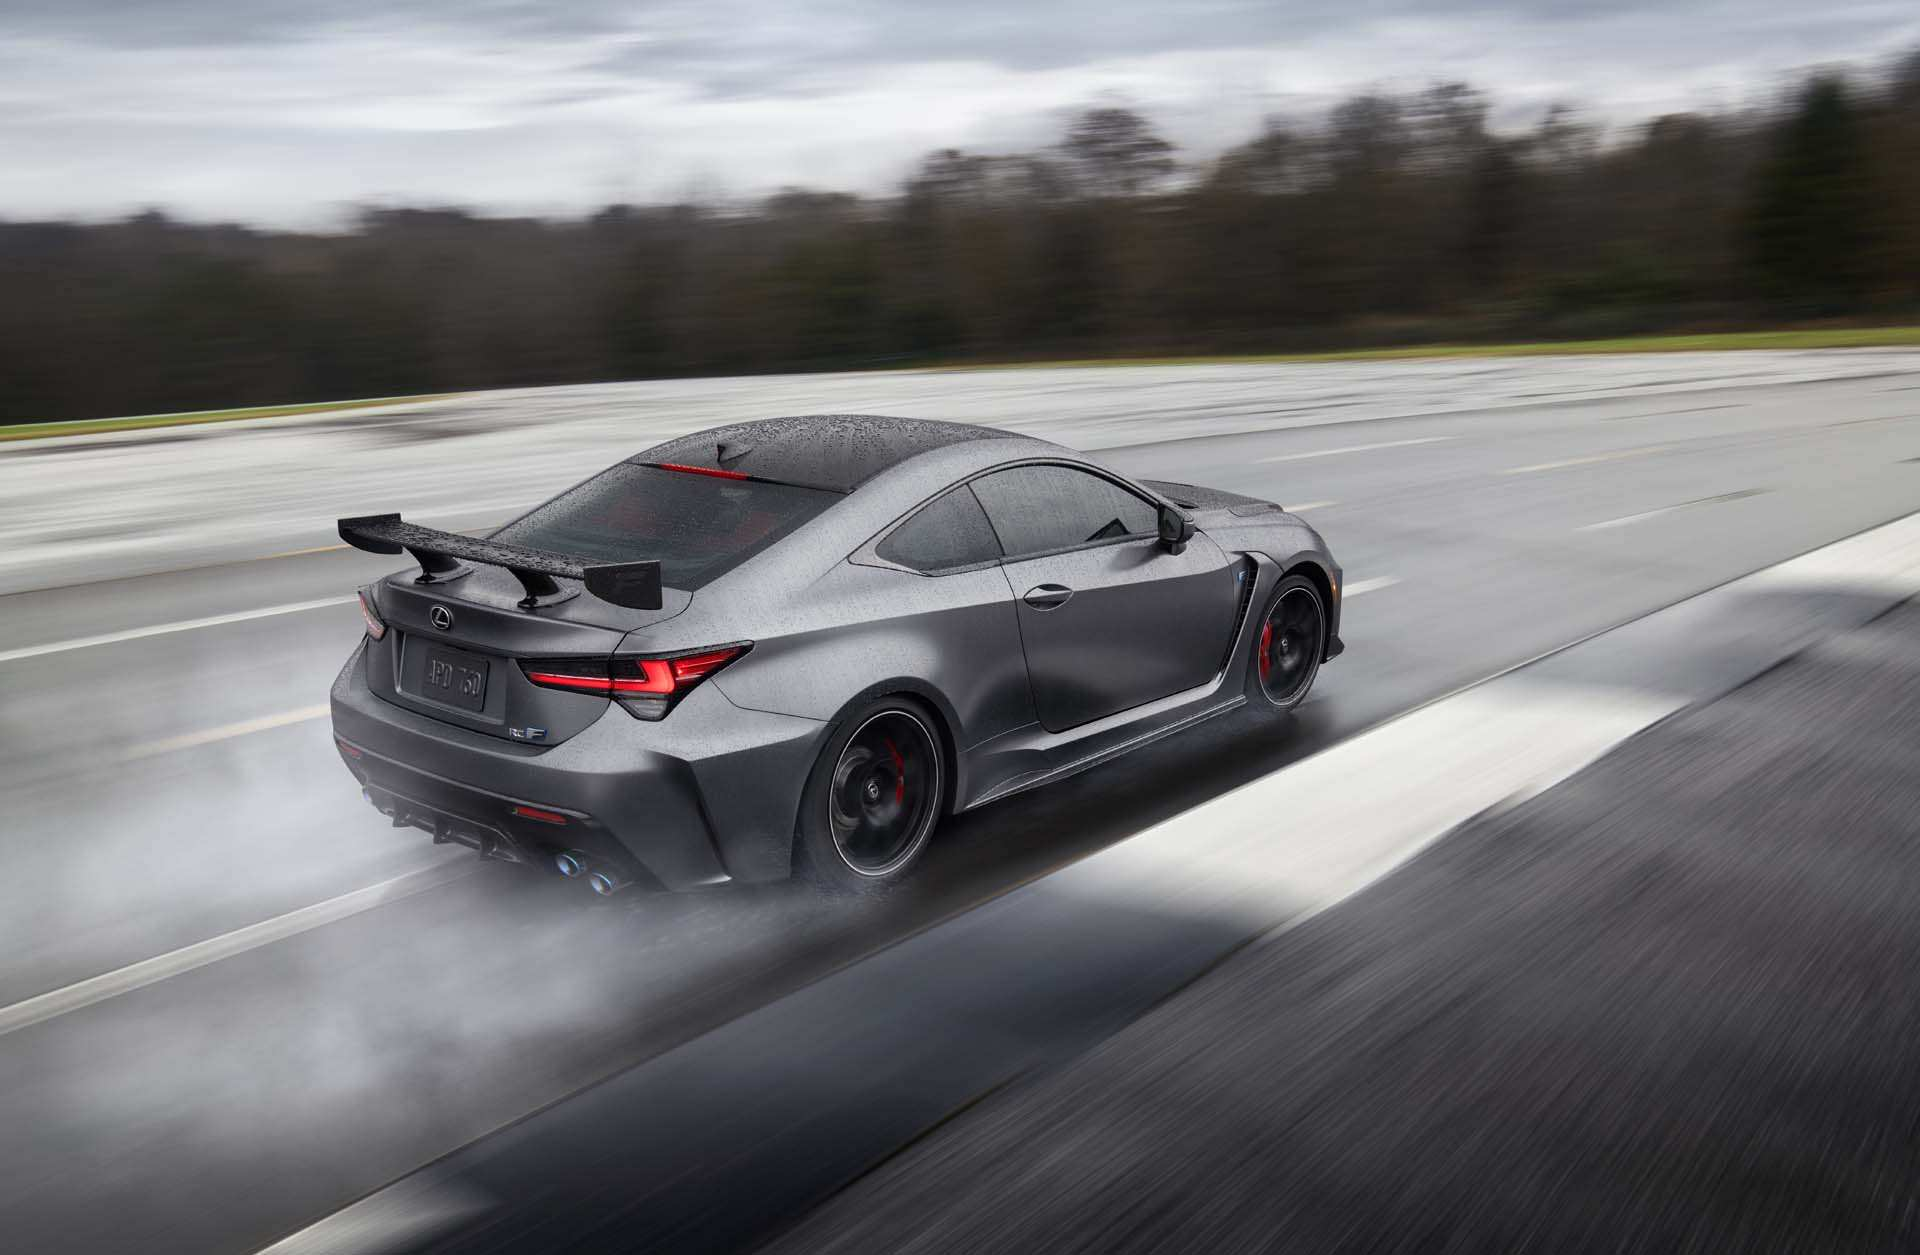 63 Best Review Lexus Rc F 2020 Price Spy Shoot with Lexus Rc F 2020 Price